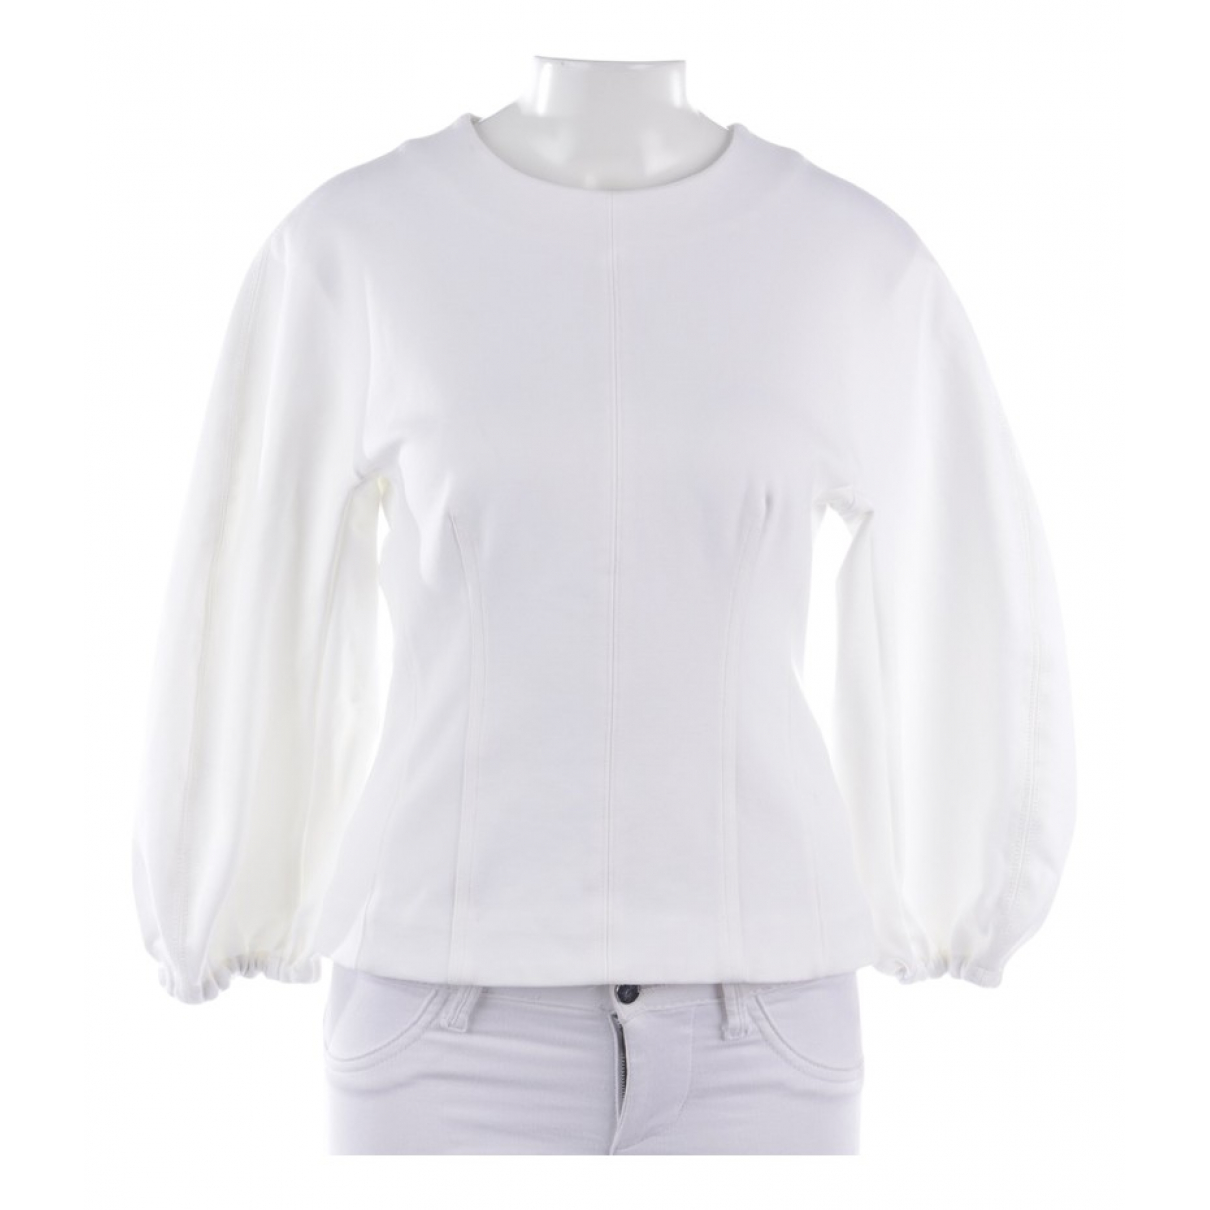 Tibi \N White  top for Women 36 FR